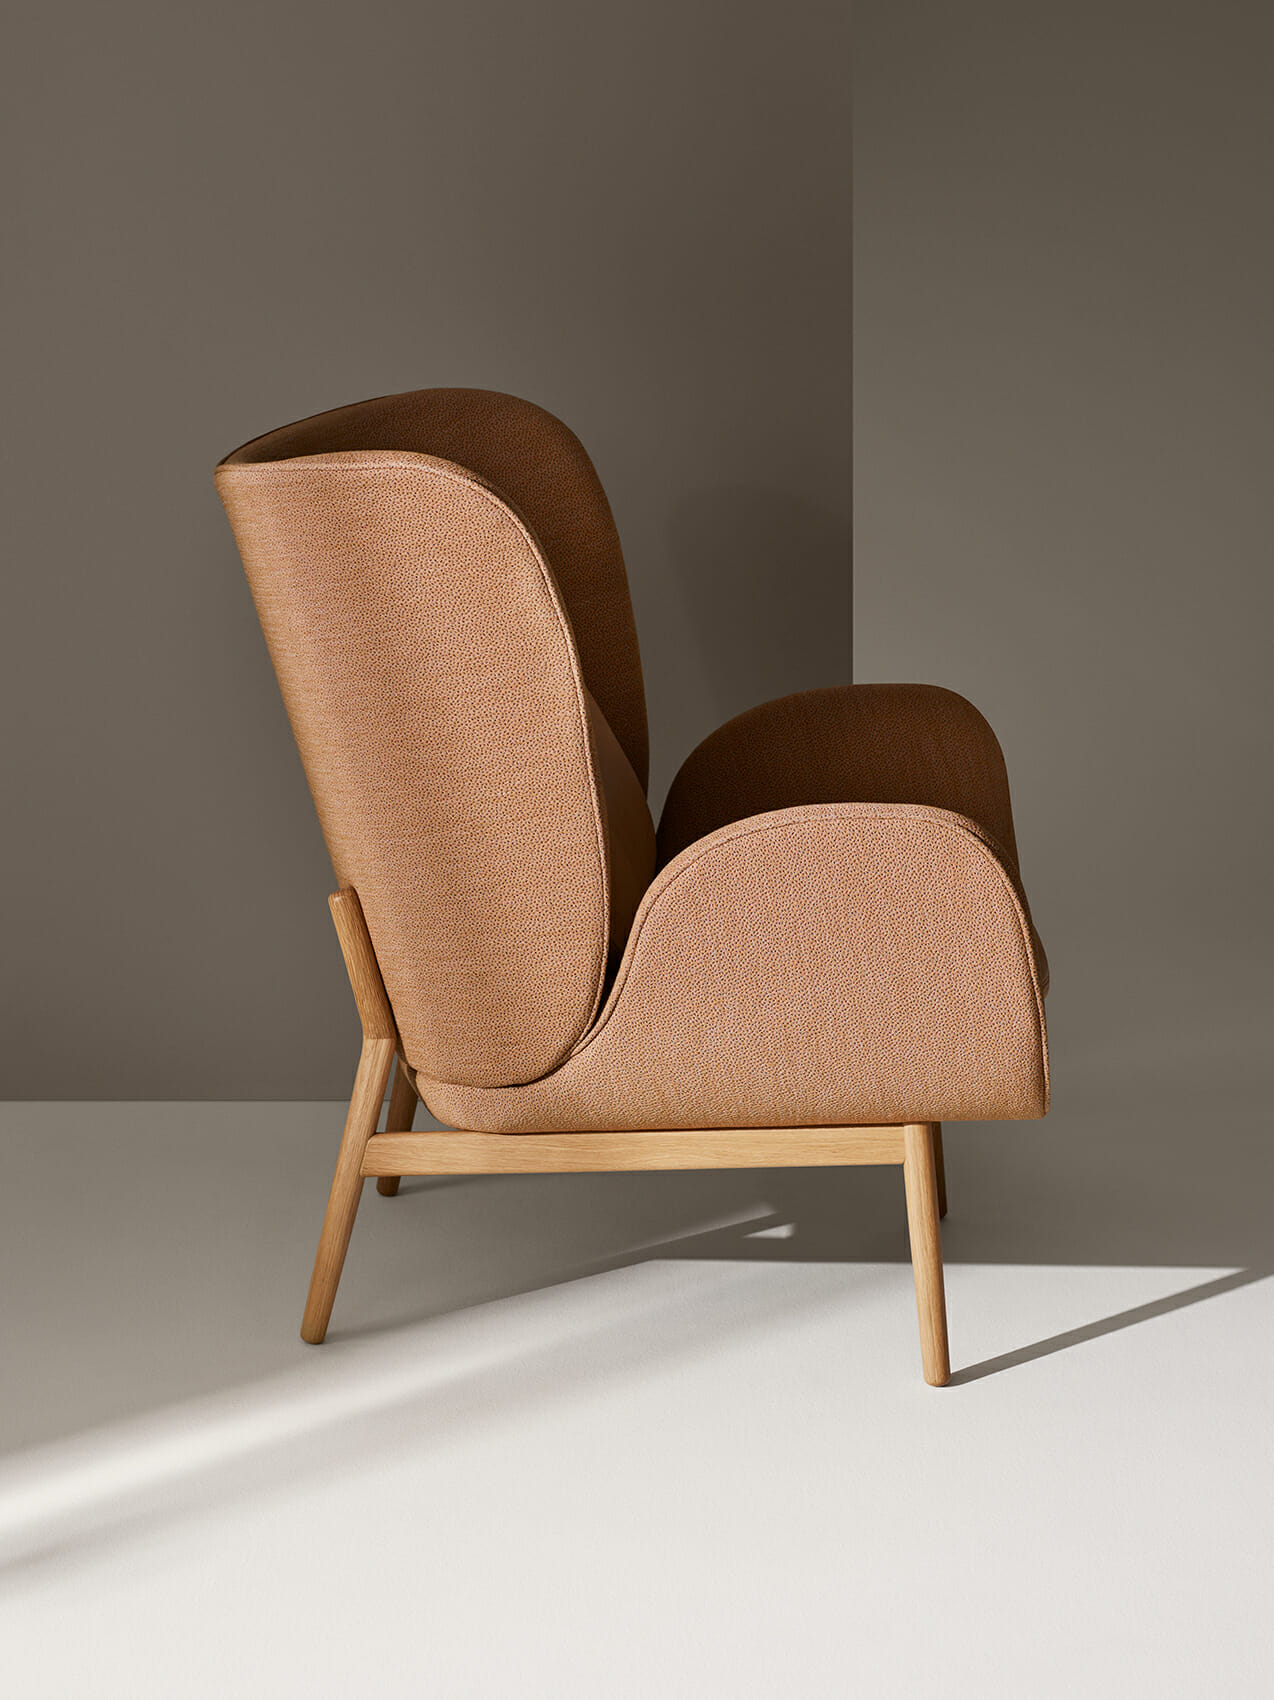 The 'Enclose' chair by Norm Architects for Fogia.